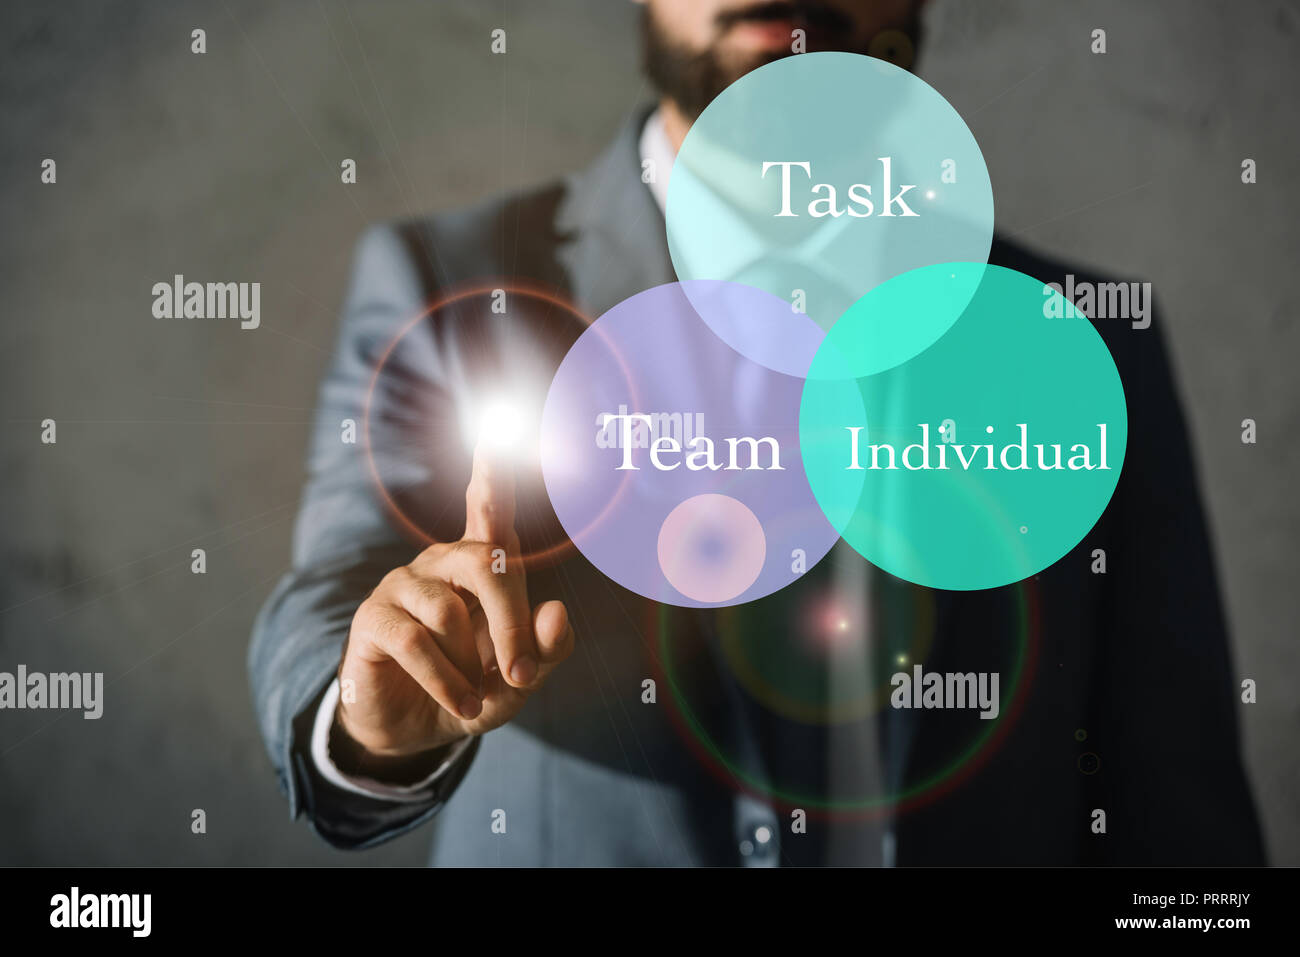 cropped view of successful businessman touching circles with task, team and individual words Stock Photo